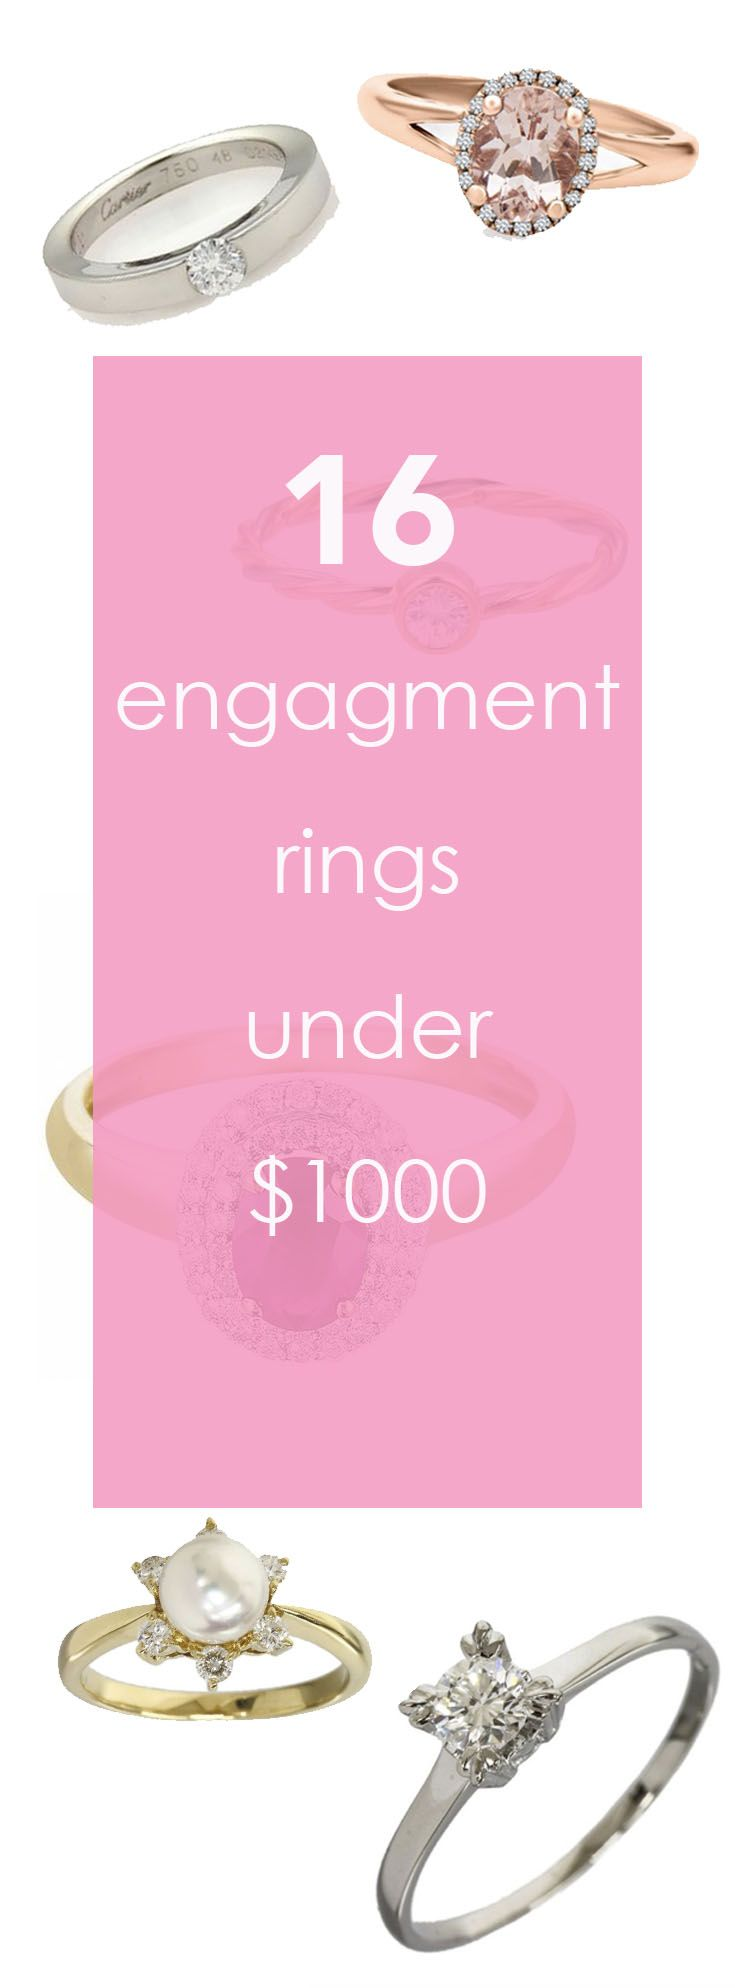 Here is how to get engagement rings for under a grand. Yes, really ...